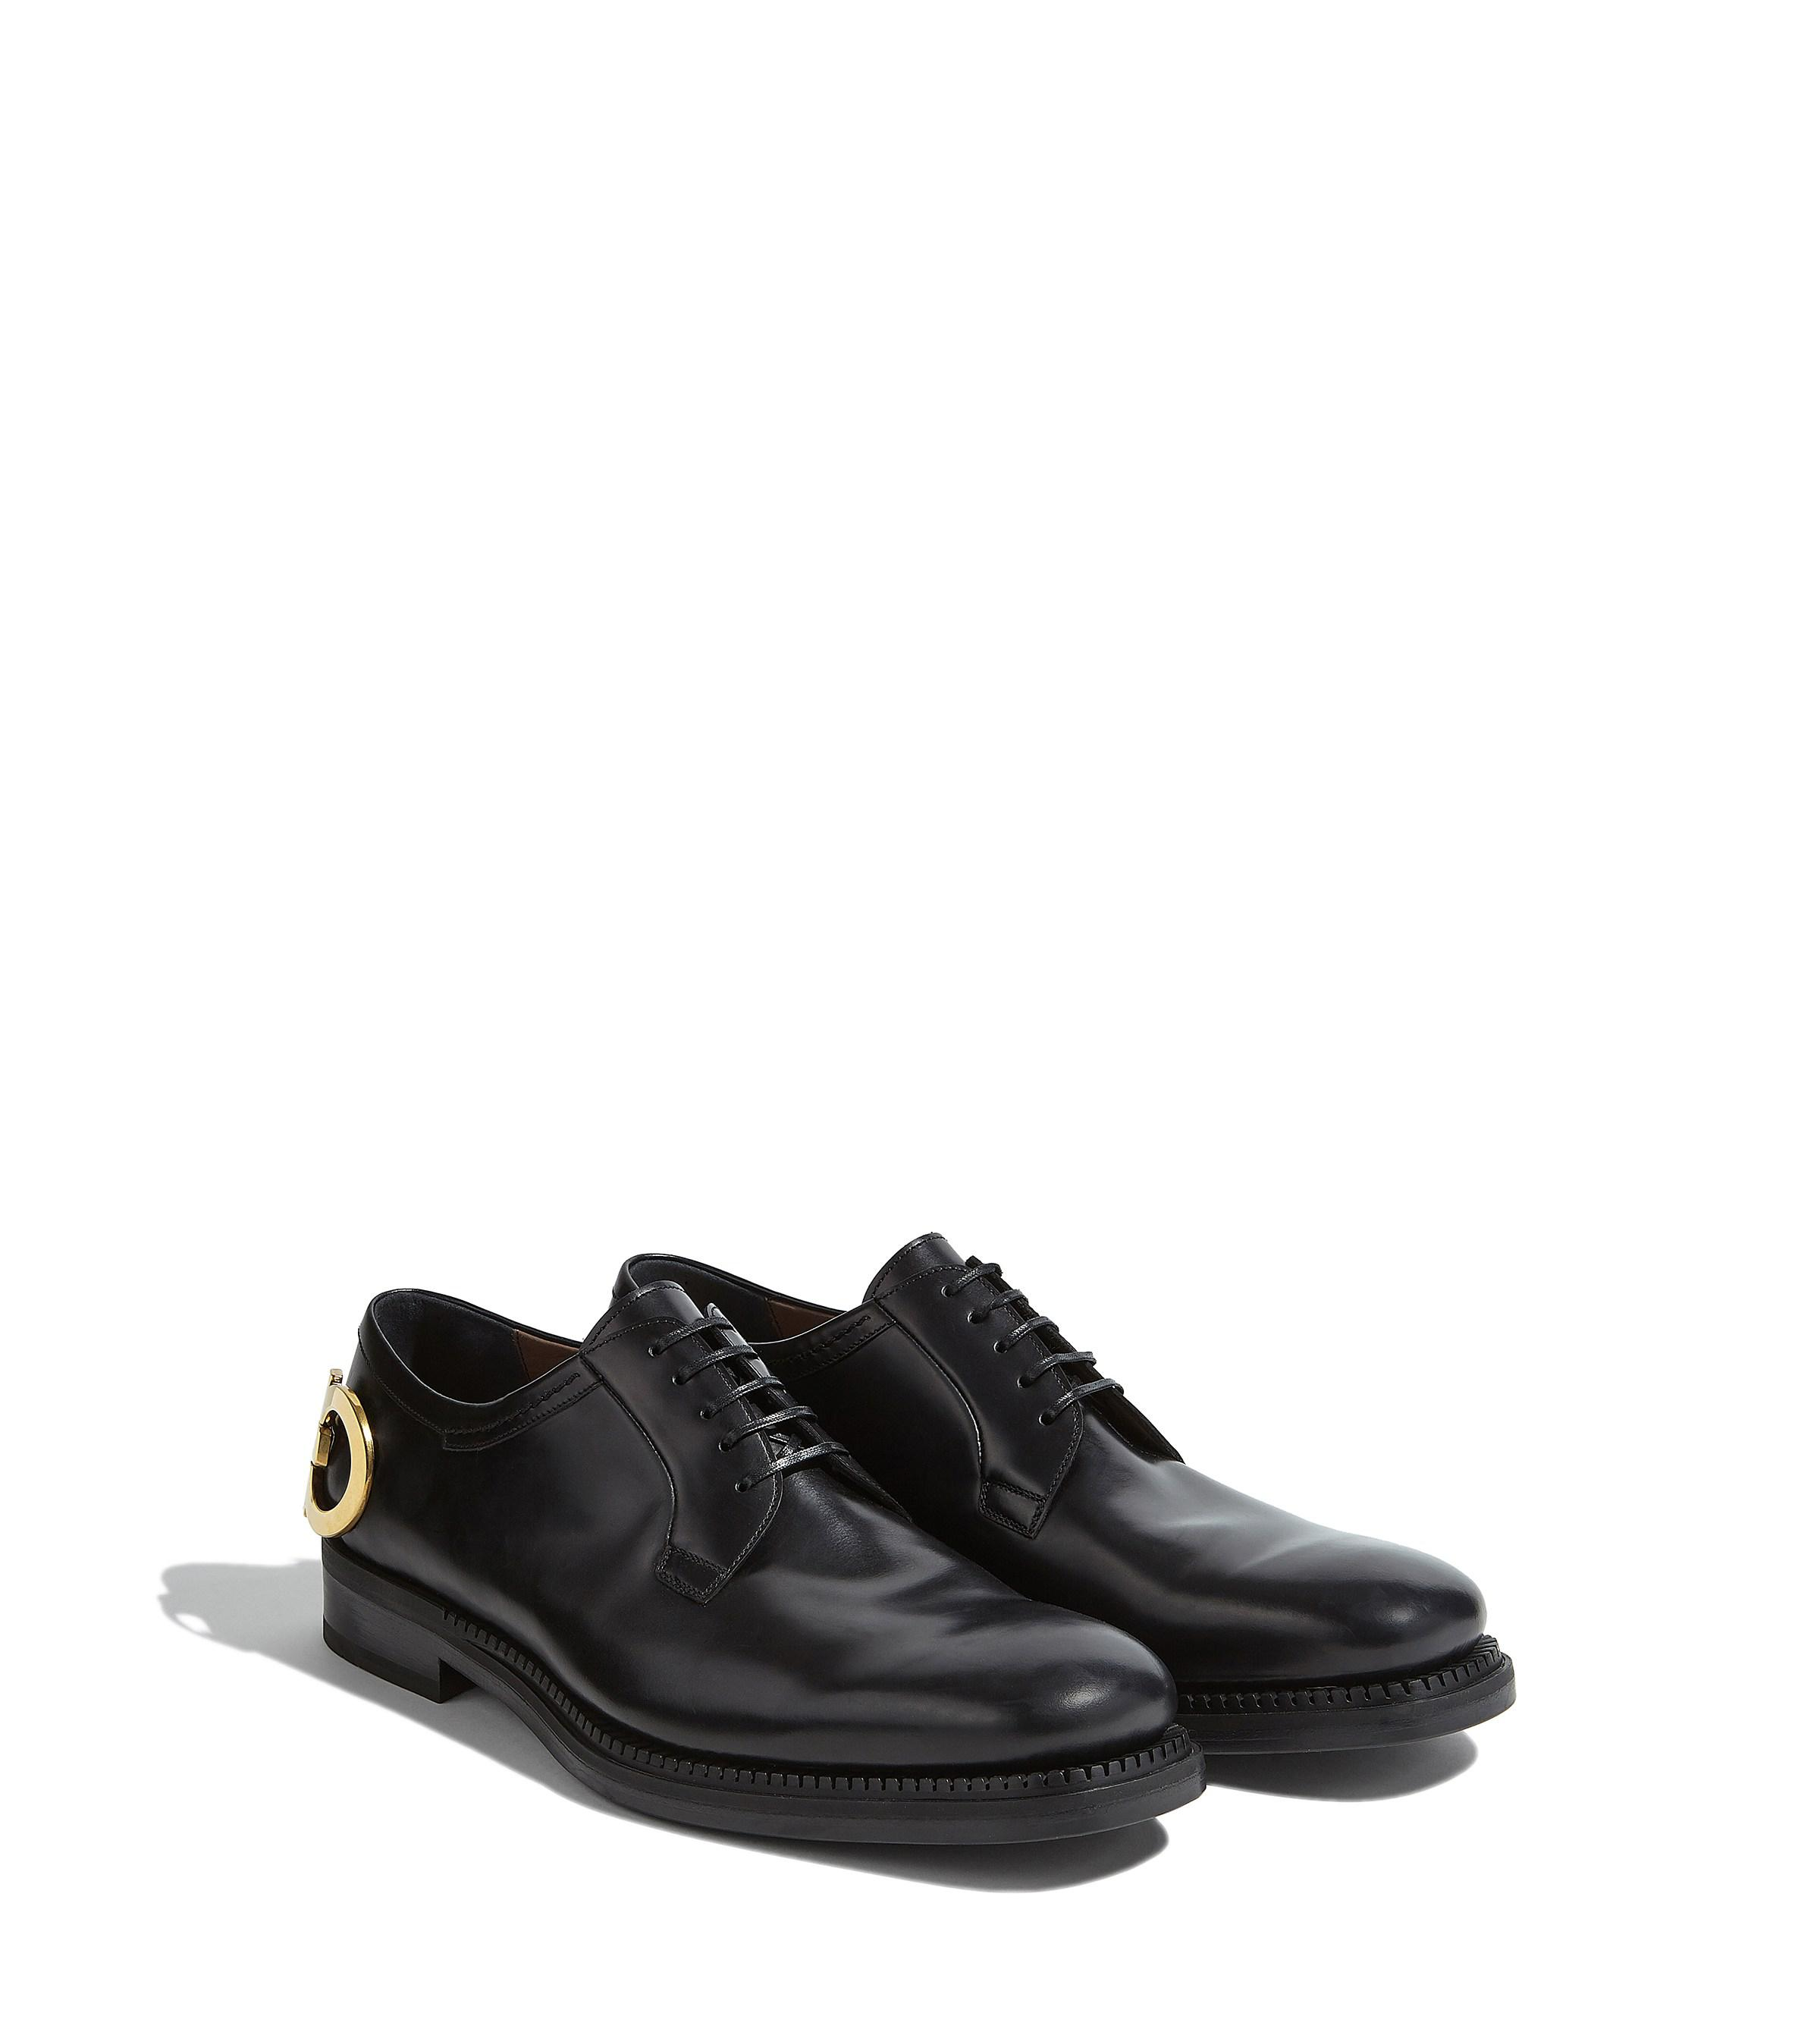 f9c10321d814c4 Lyst - Ferragamo Gancini Derby Shoe in Black for Men - Save 22%